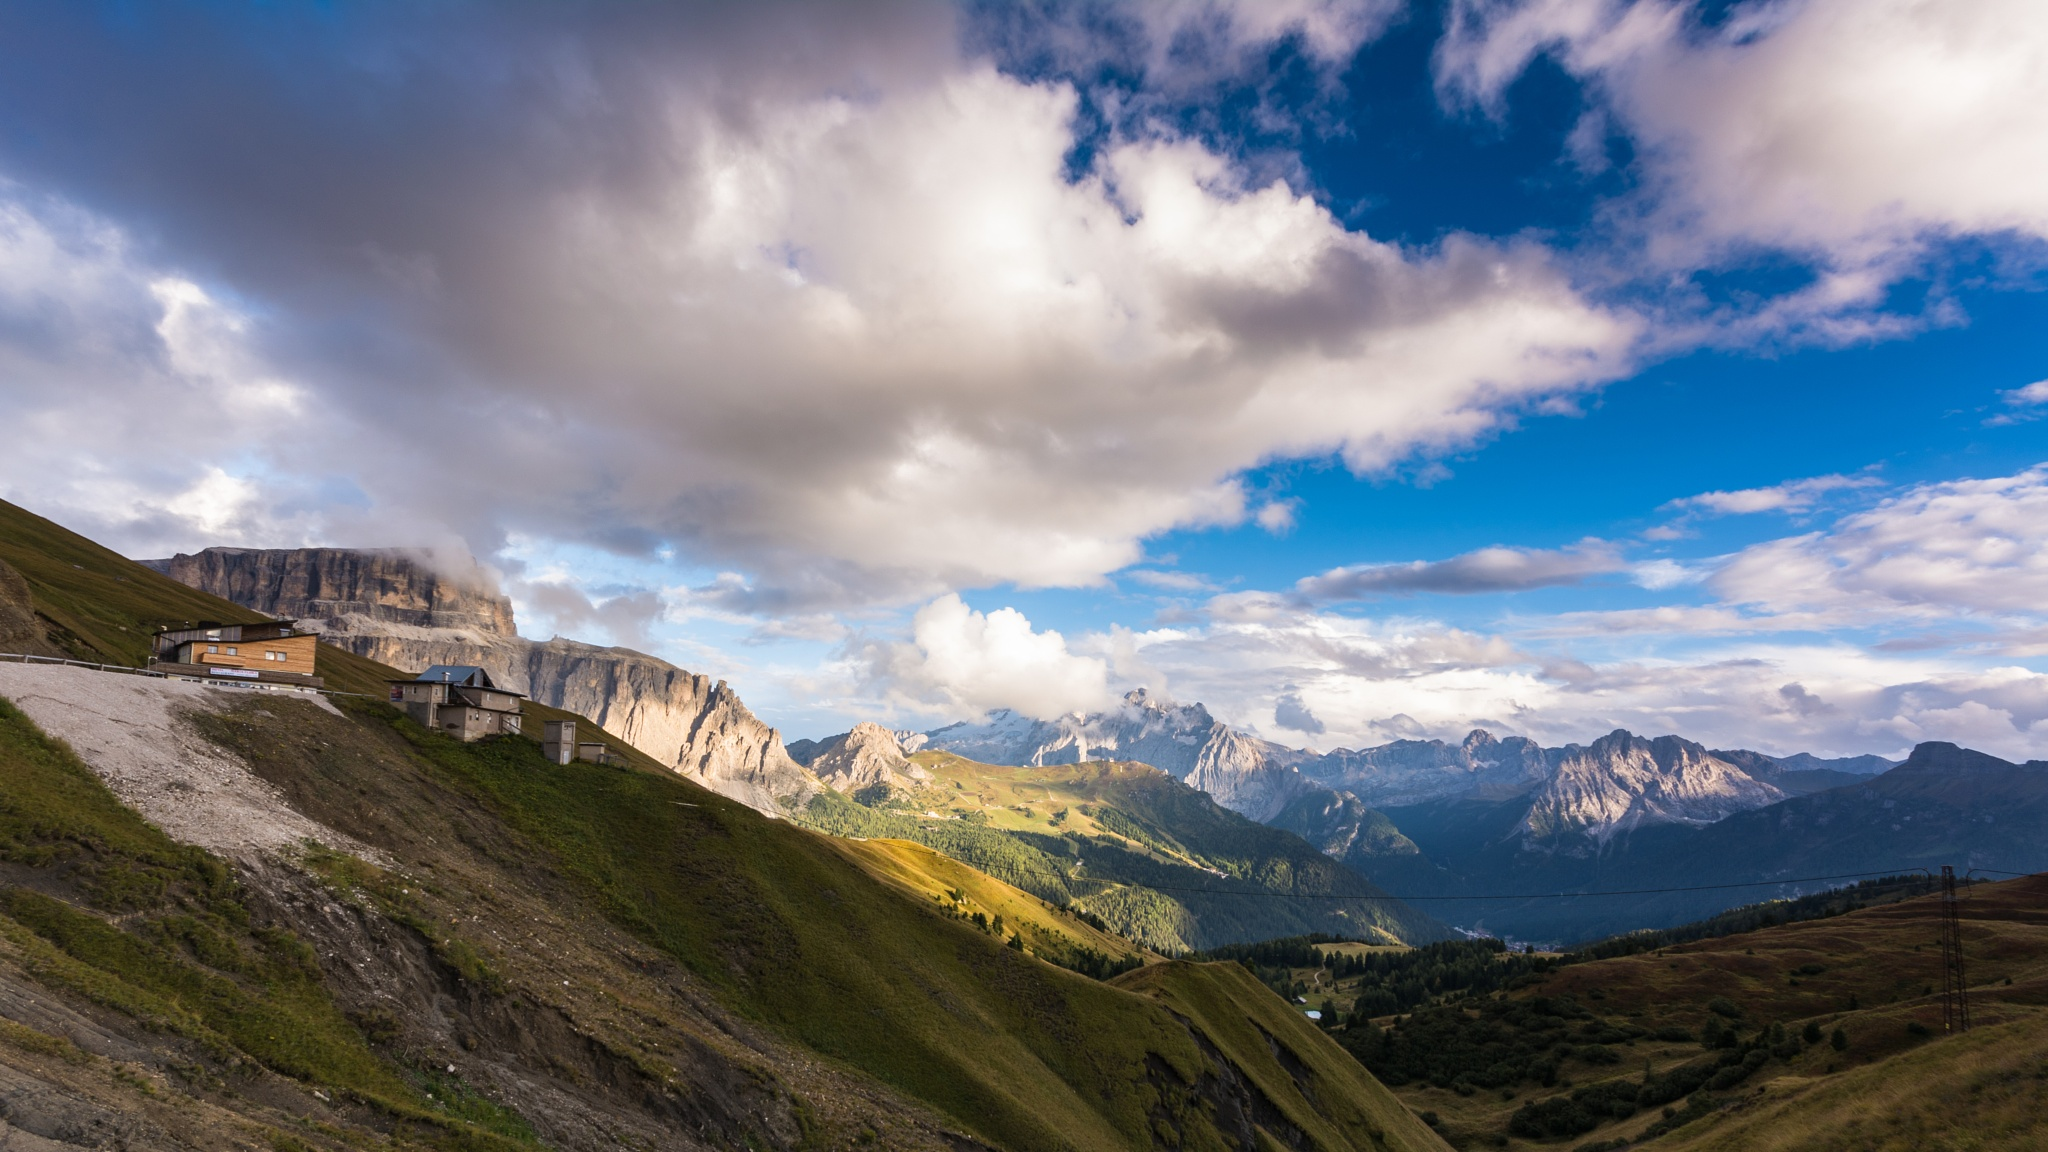 Passo Sella (Italy) by Gianni Santolin